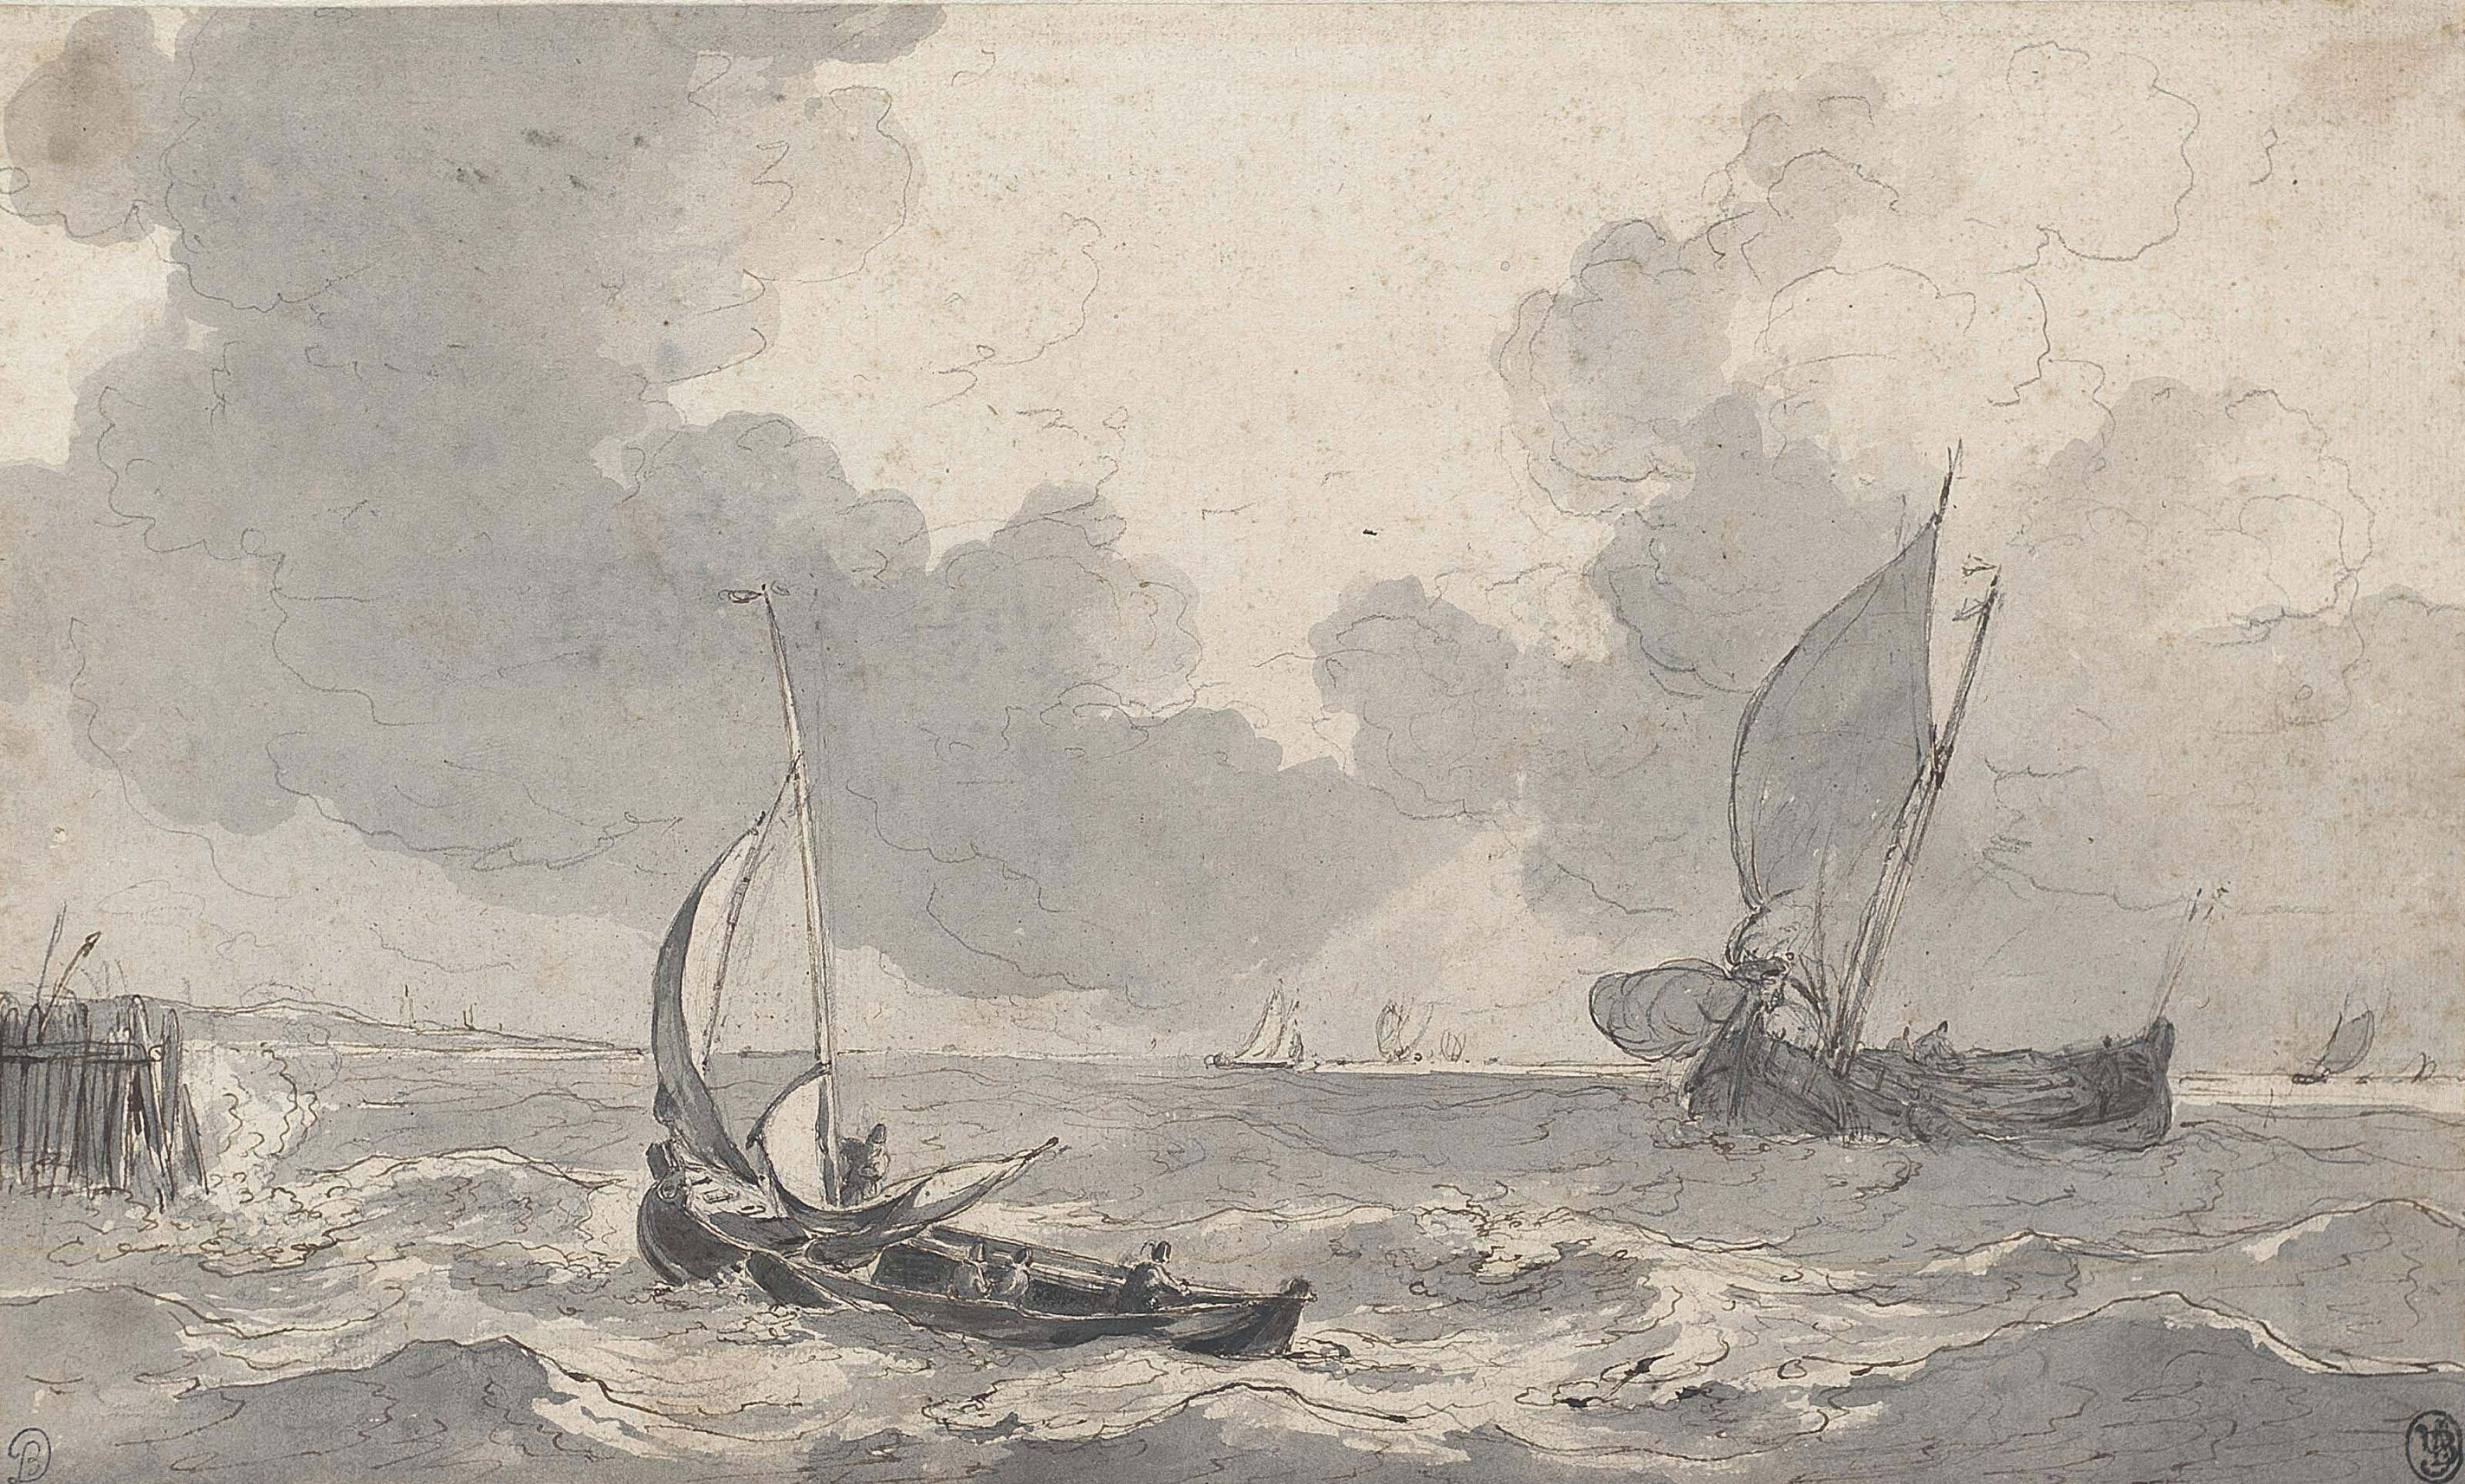 Fishing boats in a rough sea